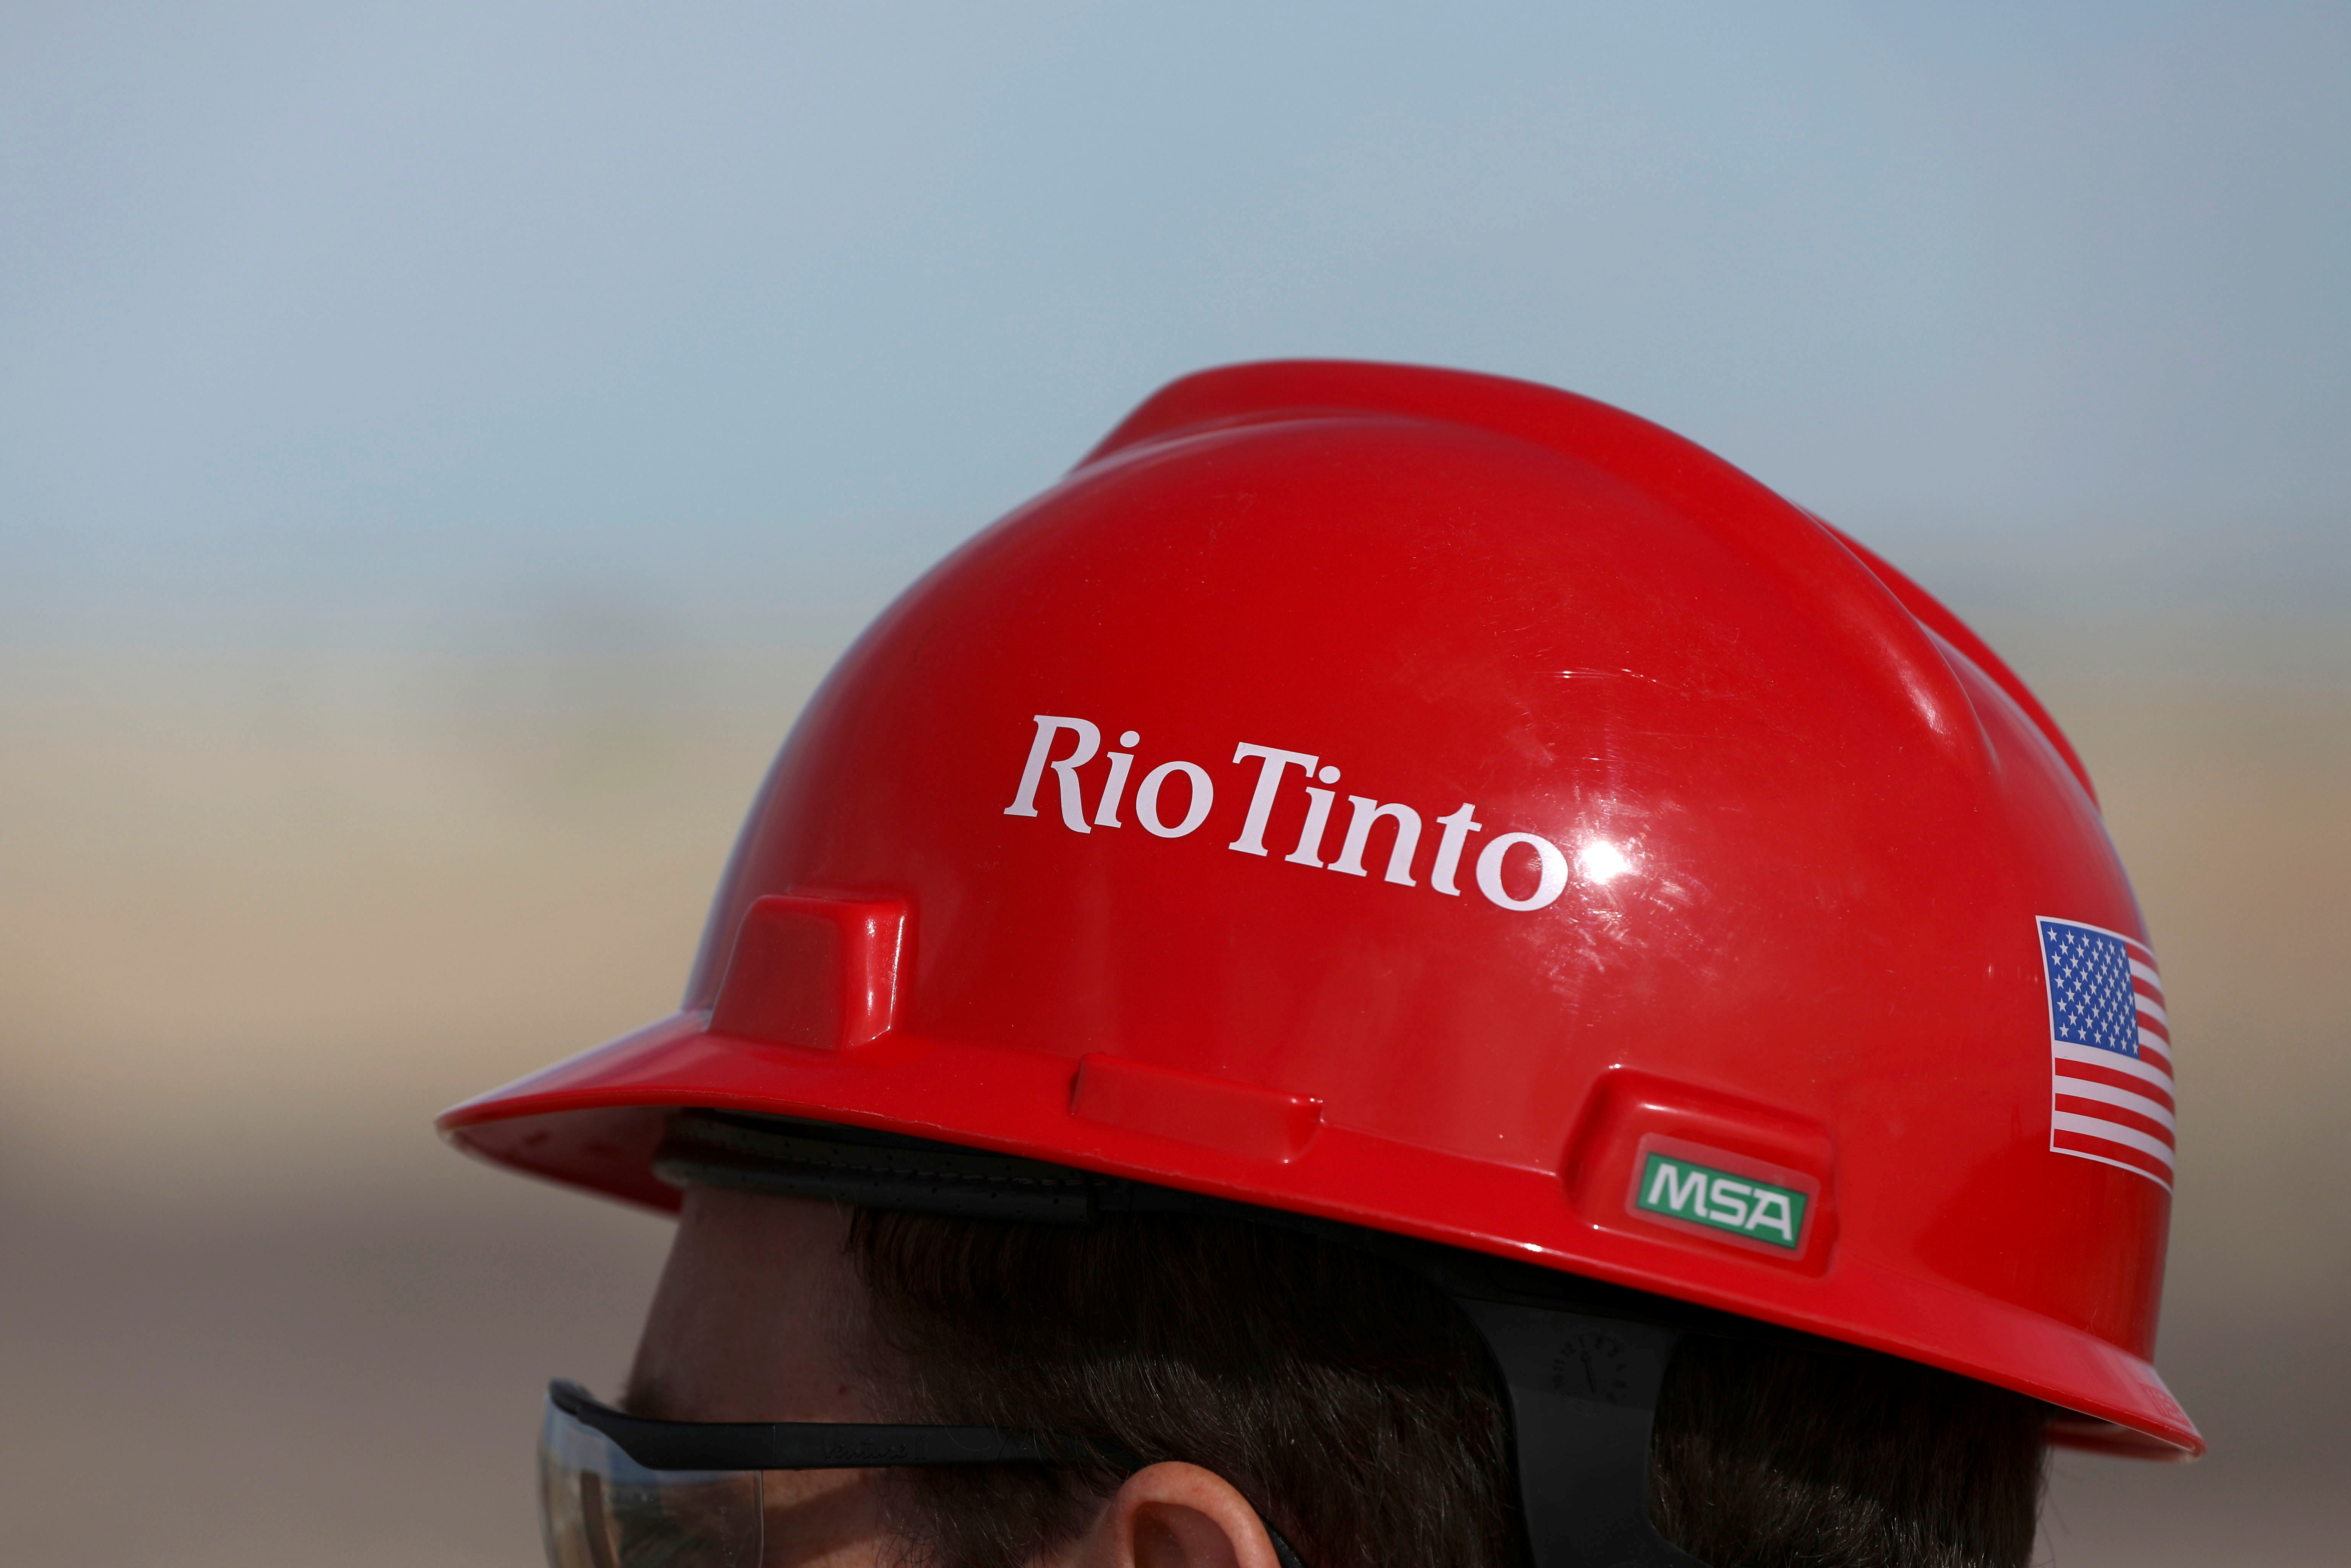 The Rio Tinto logo is displayed on a visitor's helmet at a mine in Boron, California, U.S., November 15, 2019.